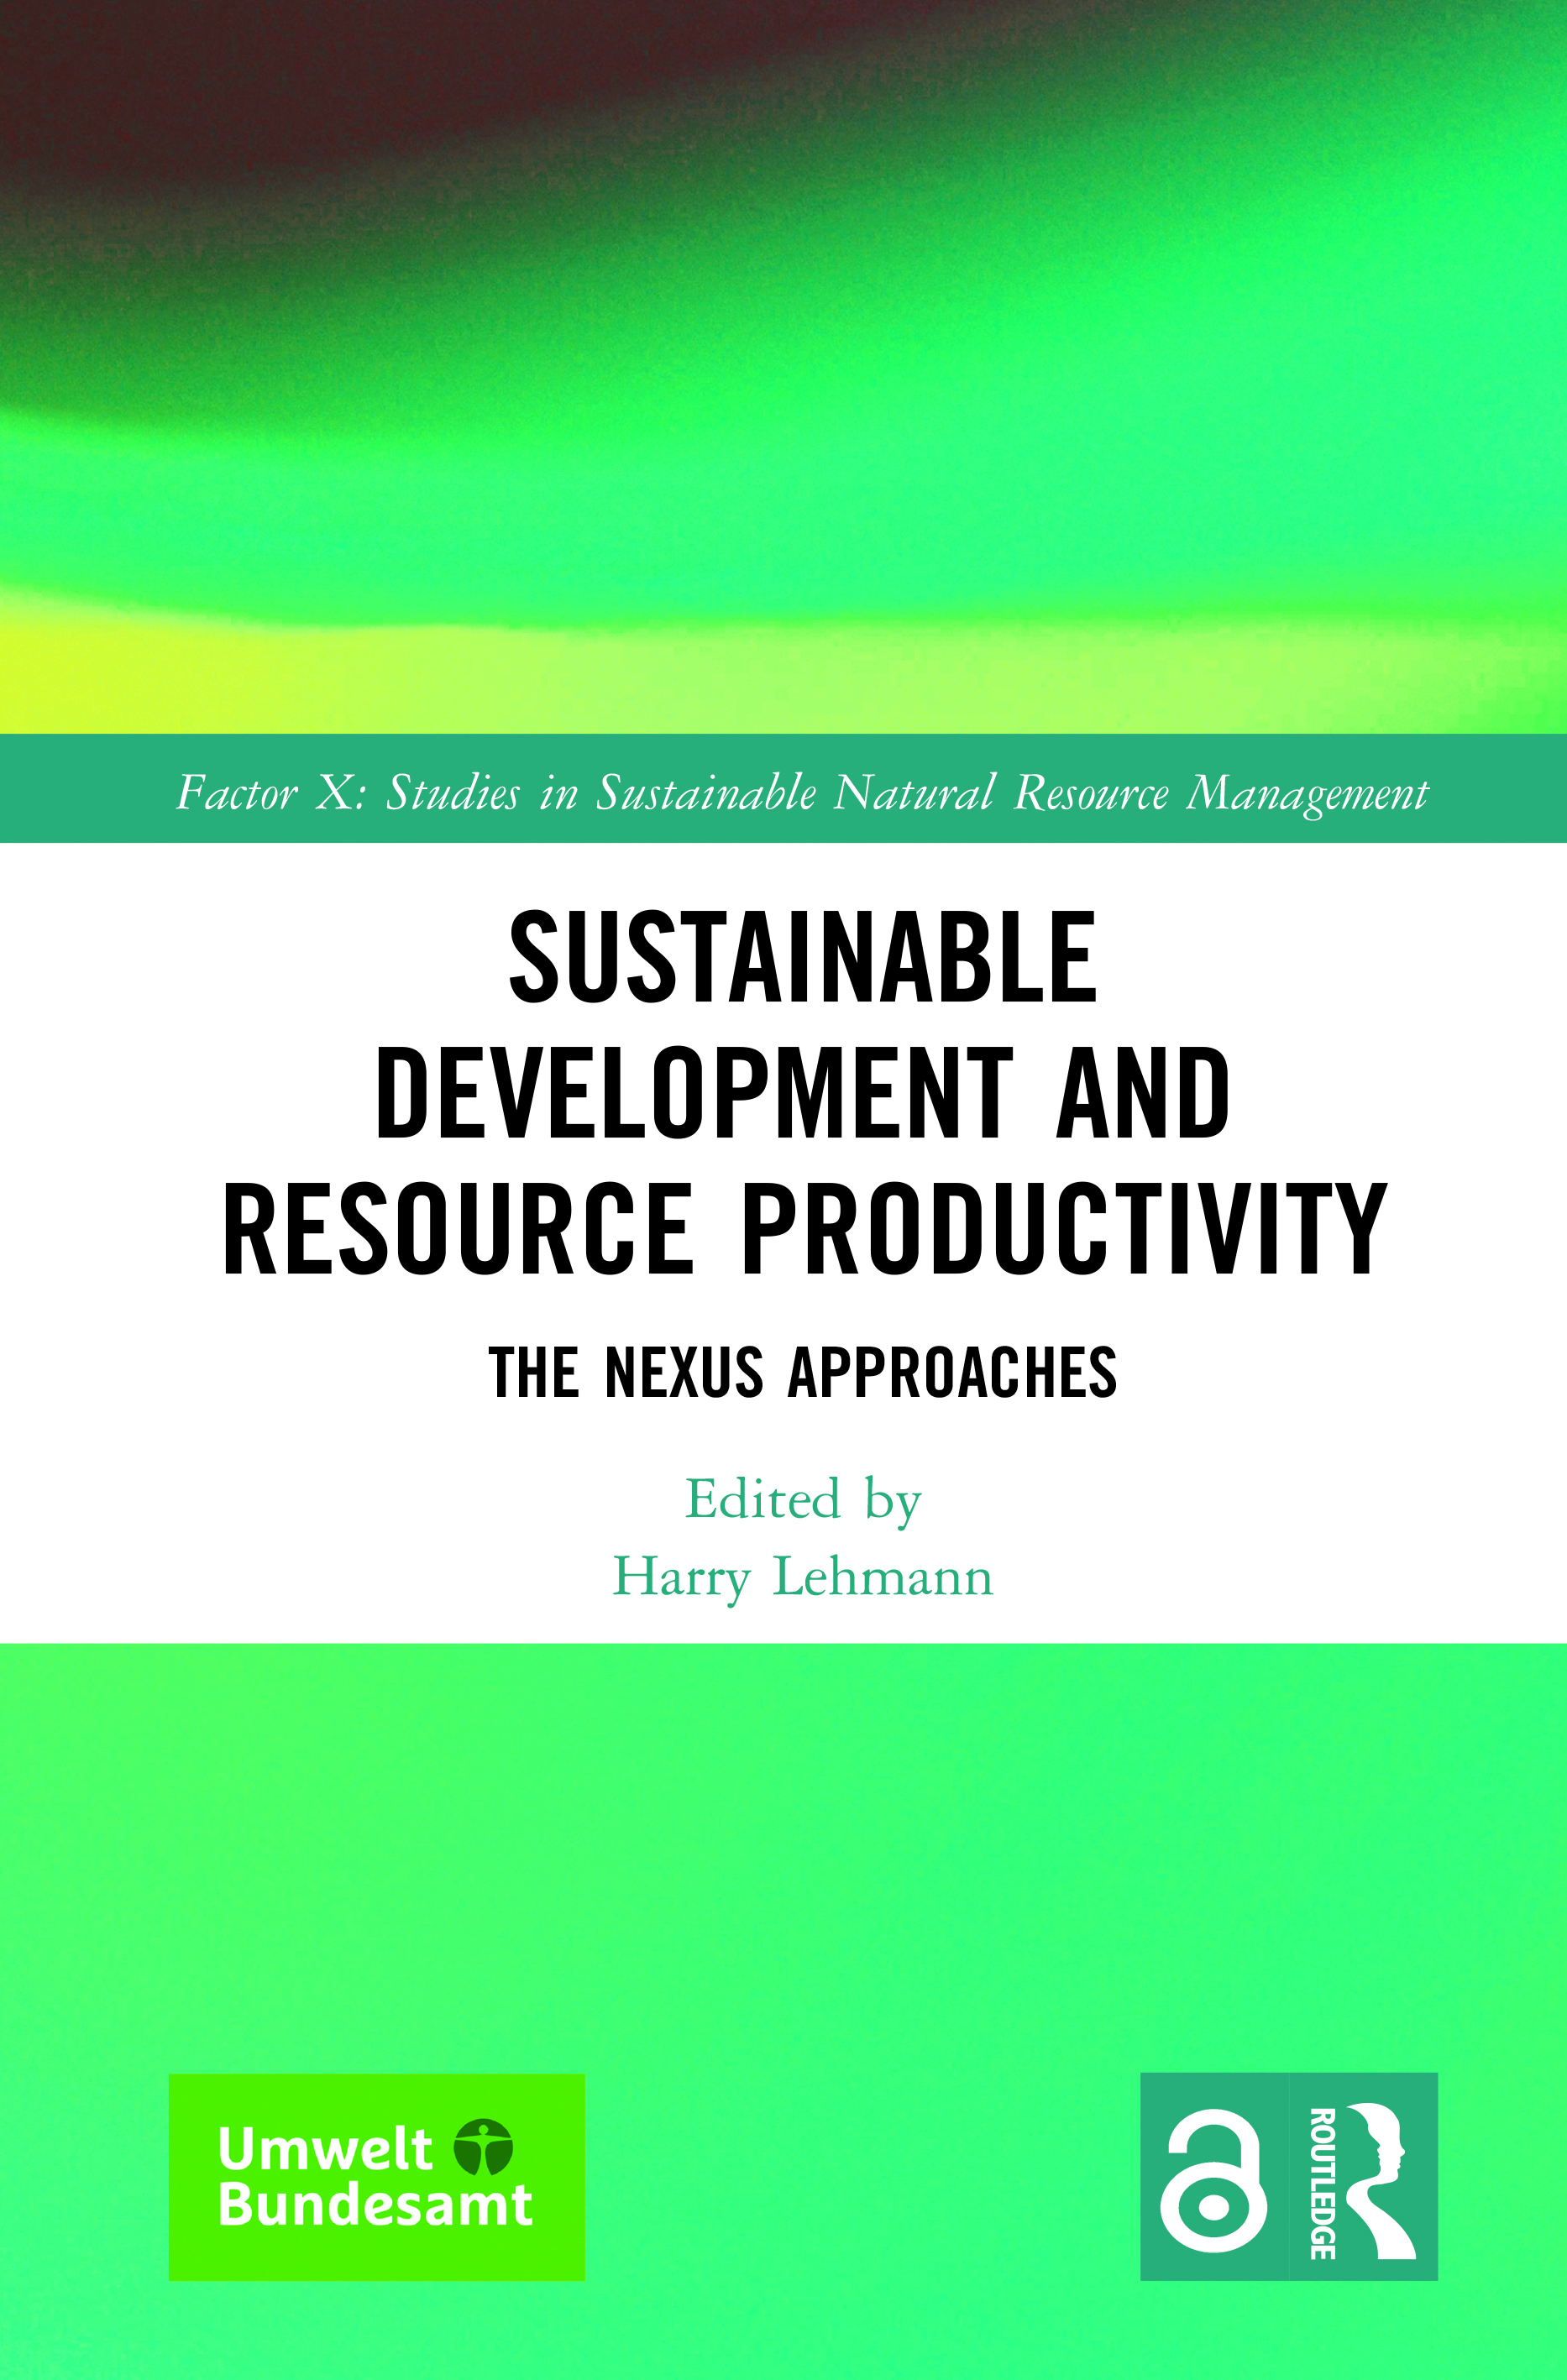 Sustainable development as the ultimate target of adopting a nexus approach to resources management